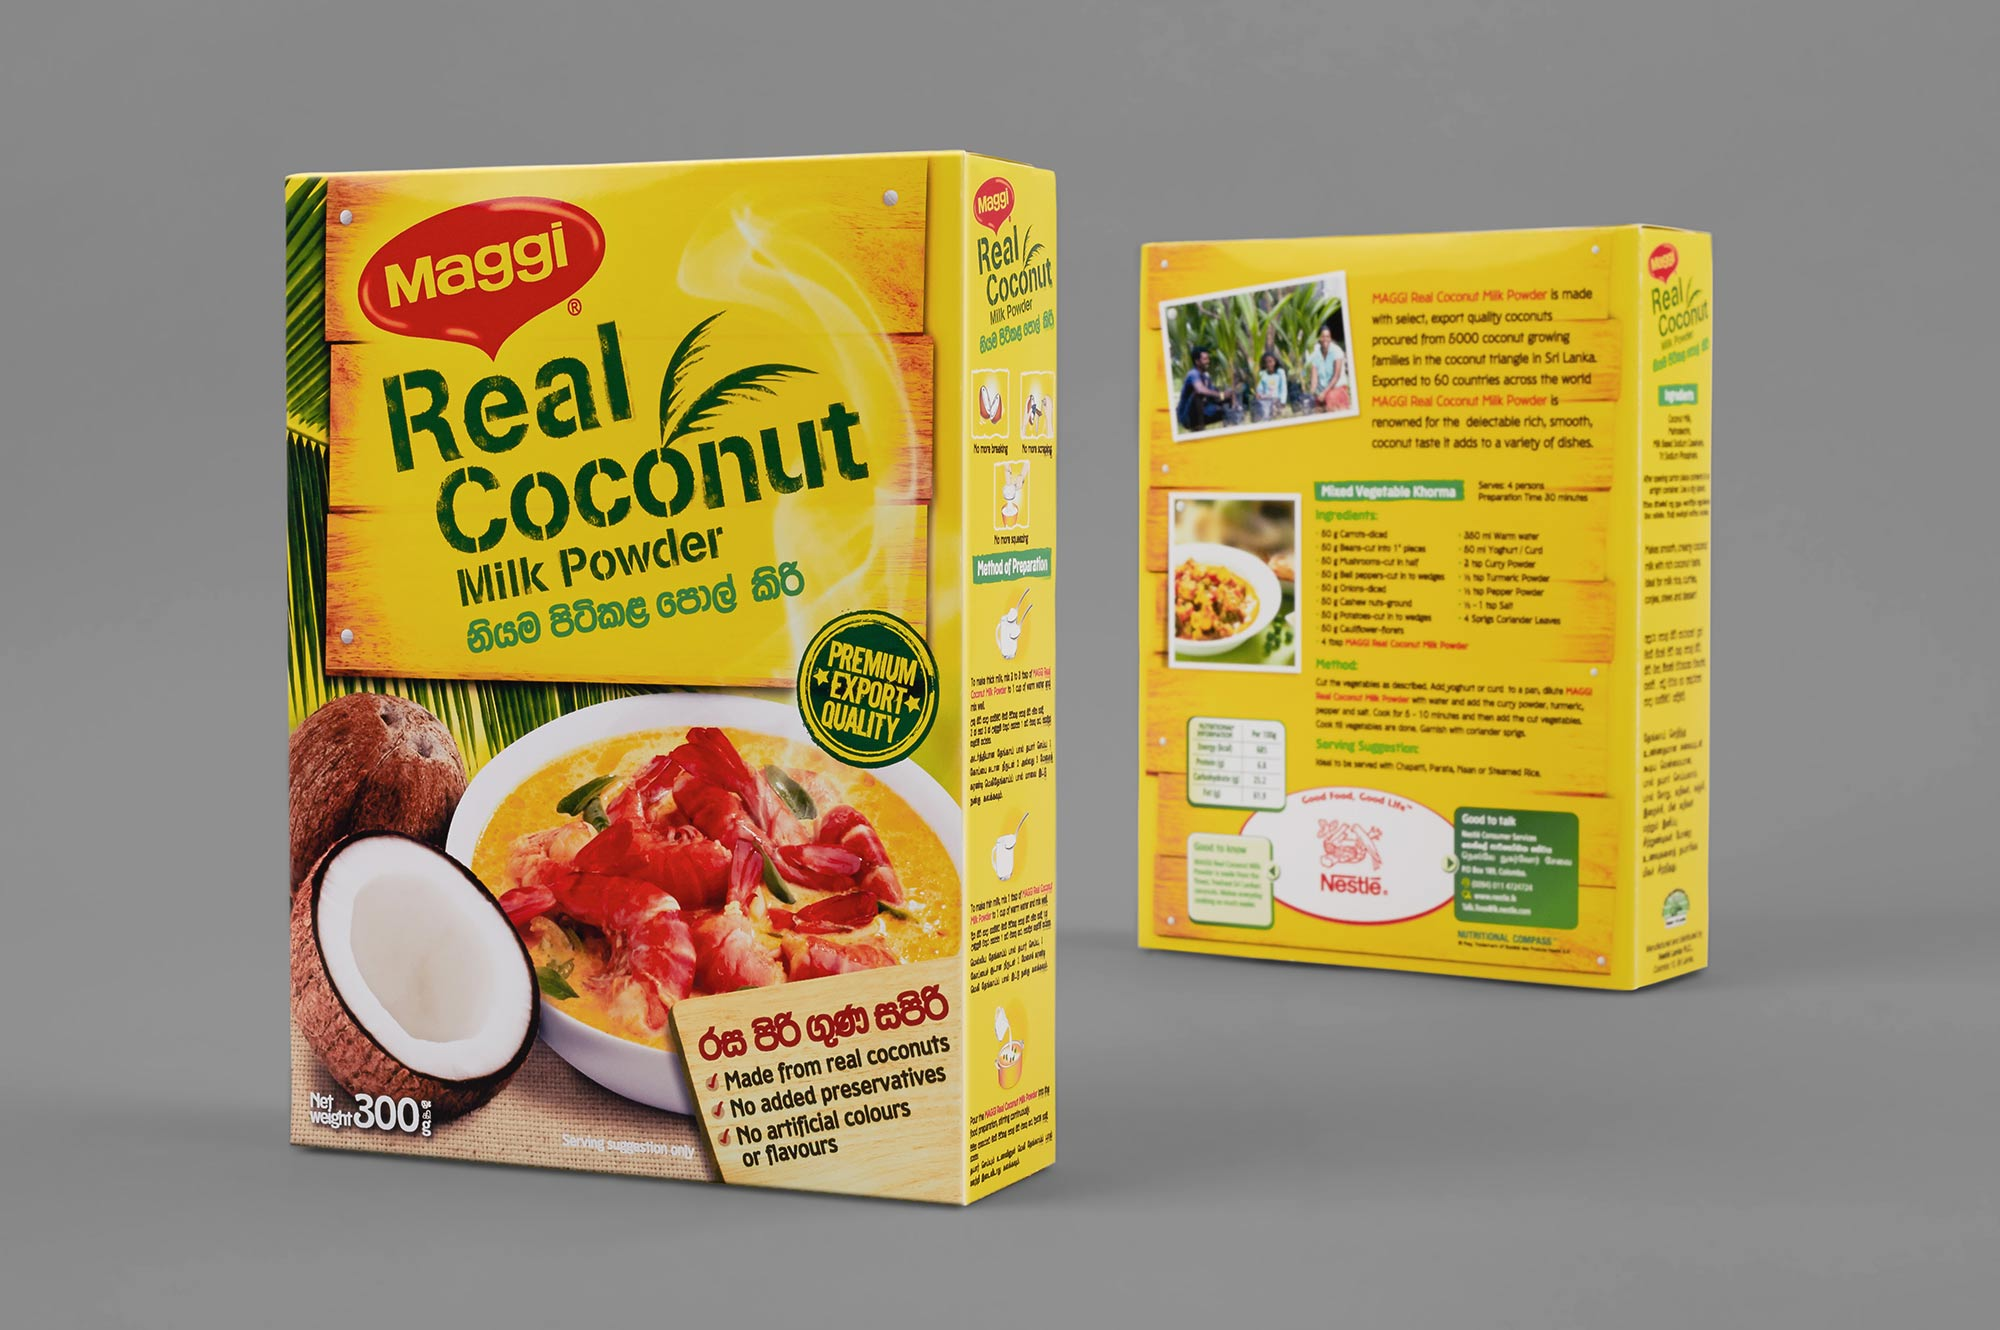 Maggi Real Coconut Packaging Design